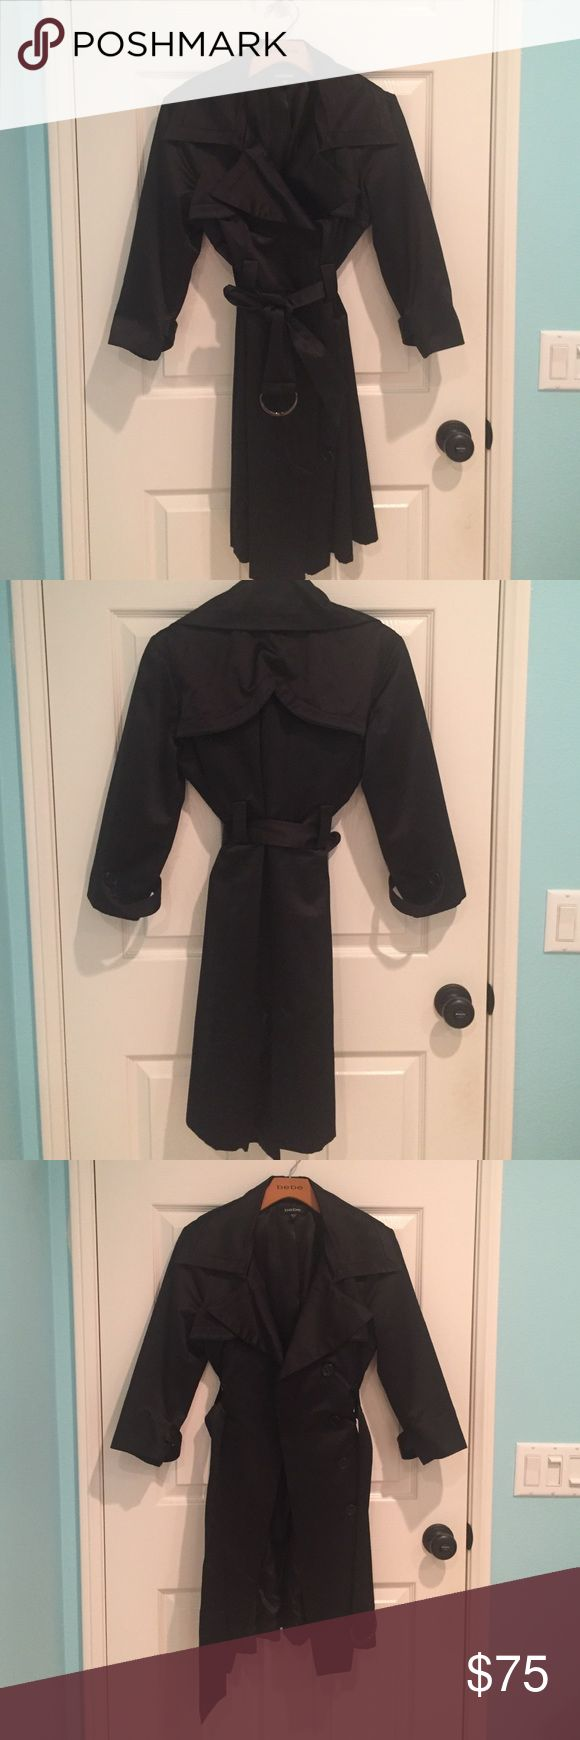 Bebe 3/4 trench jacket or dress Bebe trench 3/4 sleeve jacket. 6 buttons on front, belt can be tied or looped around 2 prong clip. Back has slit of 6 inches. Double adhesive tape can be applied to slit and worn as a dress! Double duty. Worn with great care. Medium size, length about 35 inches. I am 64 inches height and it hits right above knee. bebe Jackets & Coats Trench Coats